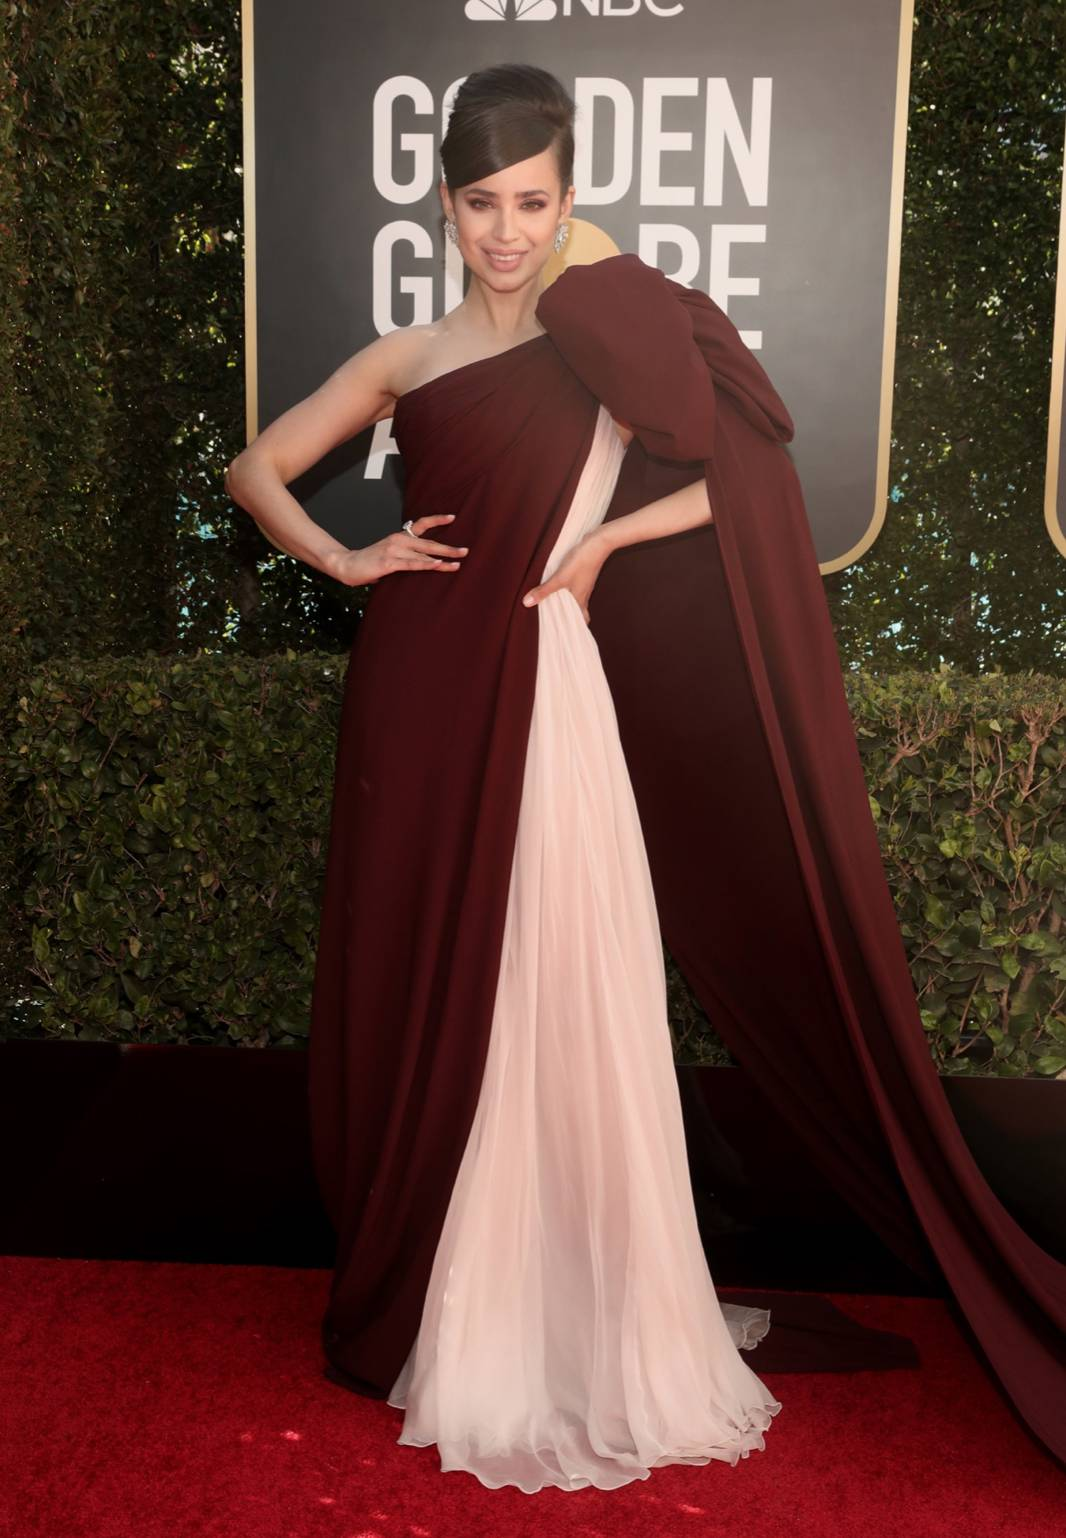 Sofia Carson at the Golden Globes